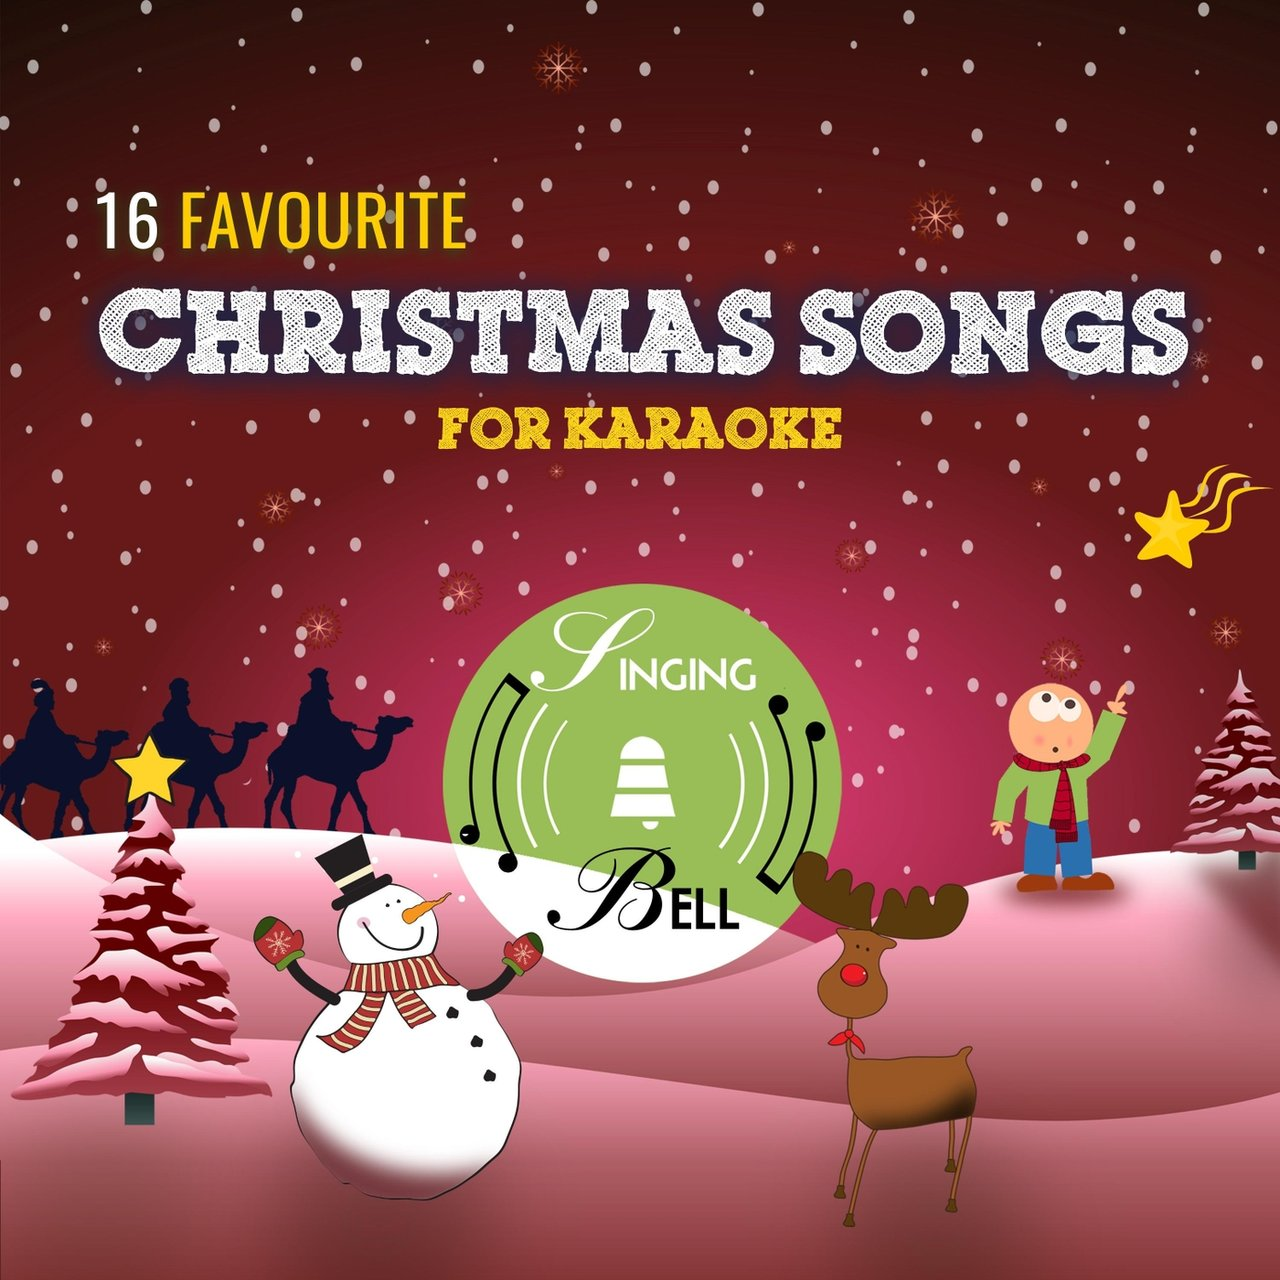 TIDAL: Listen to 16 Favourite Christmas Songs for Karaoke on TIDAL